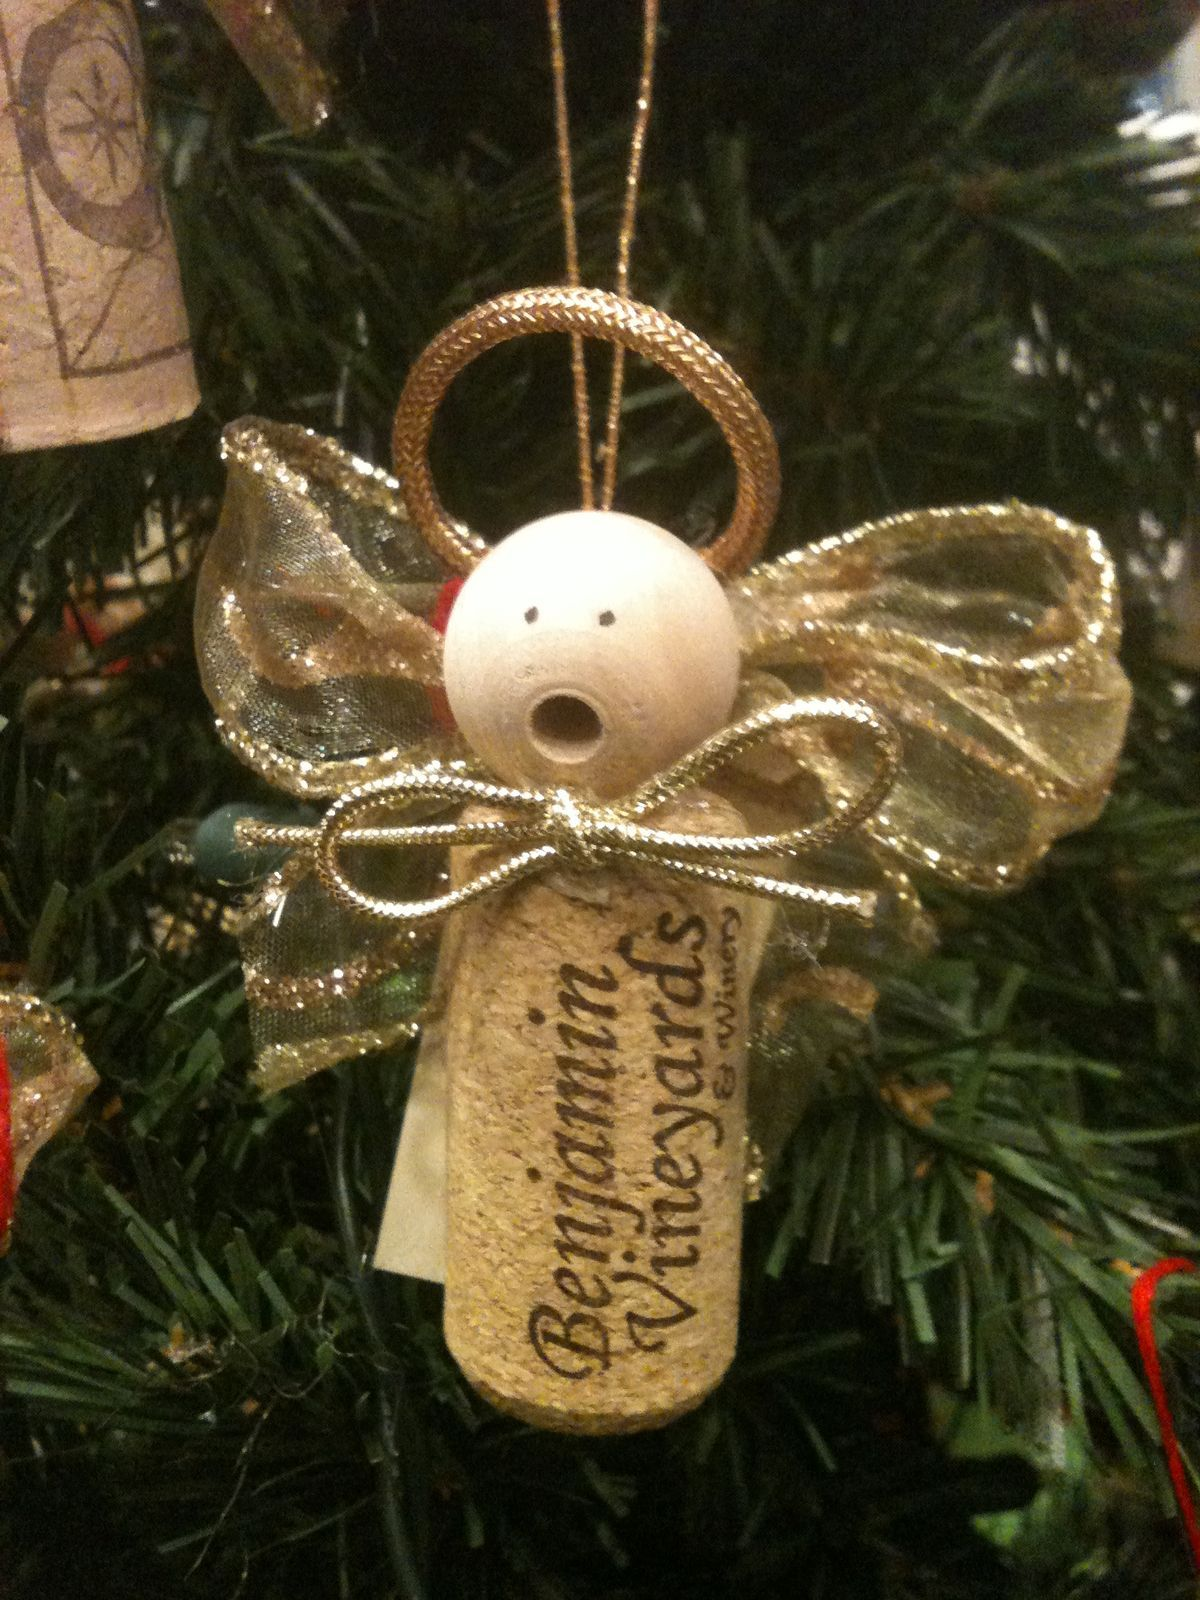 Pin by Carolyn Hunley on Vintage ornaments Pinterest